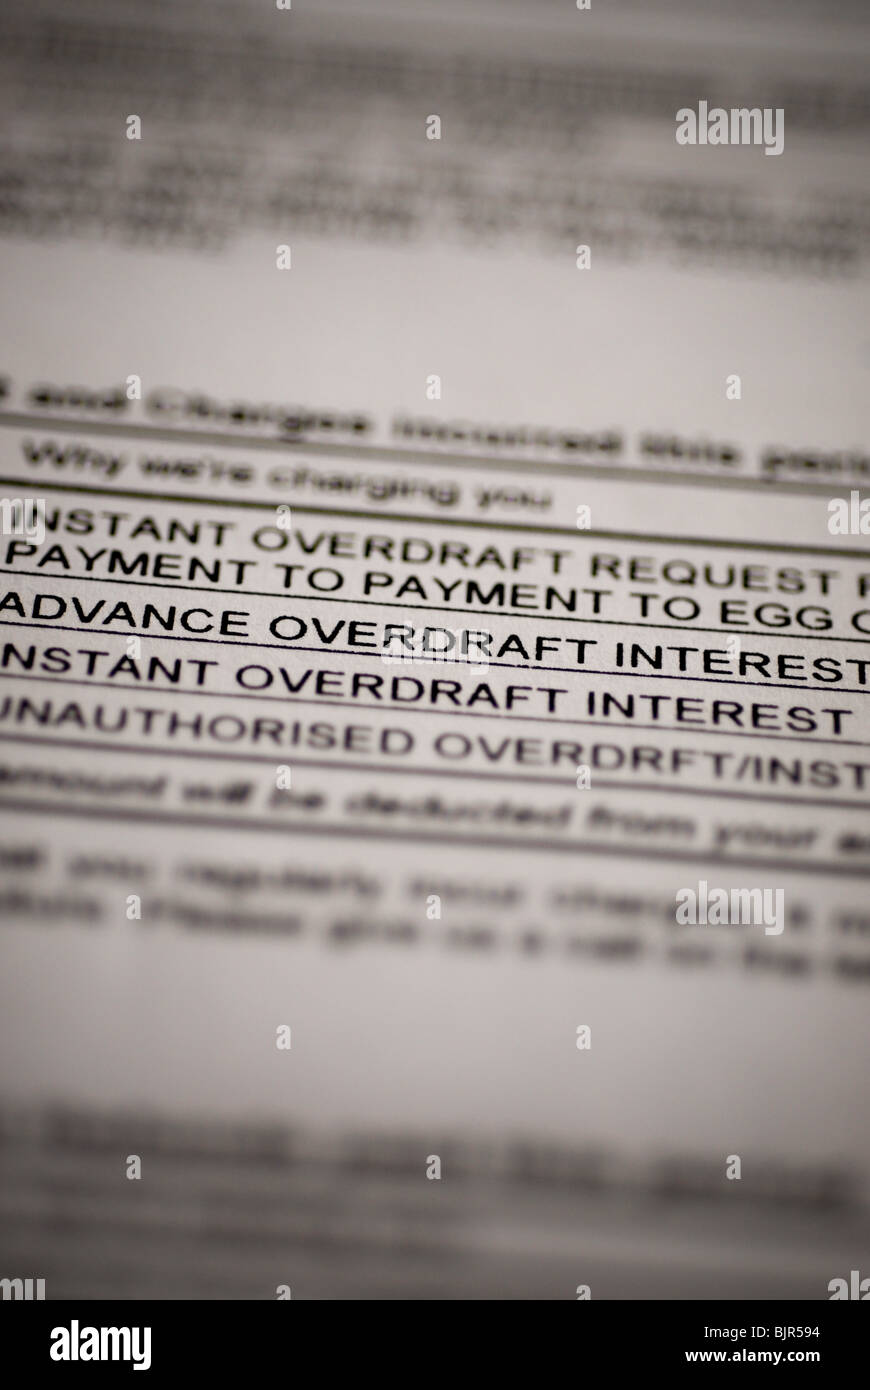 BANK STATEMENT DETAIL SHOWING INTEREST AND OVERDRAFT CHARGES. - Stock Image